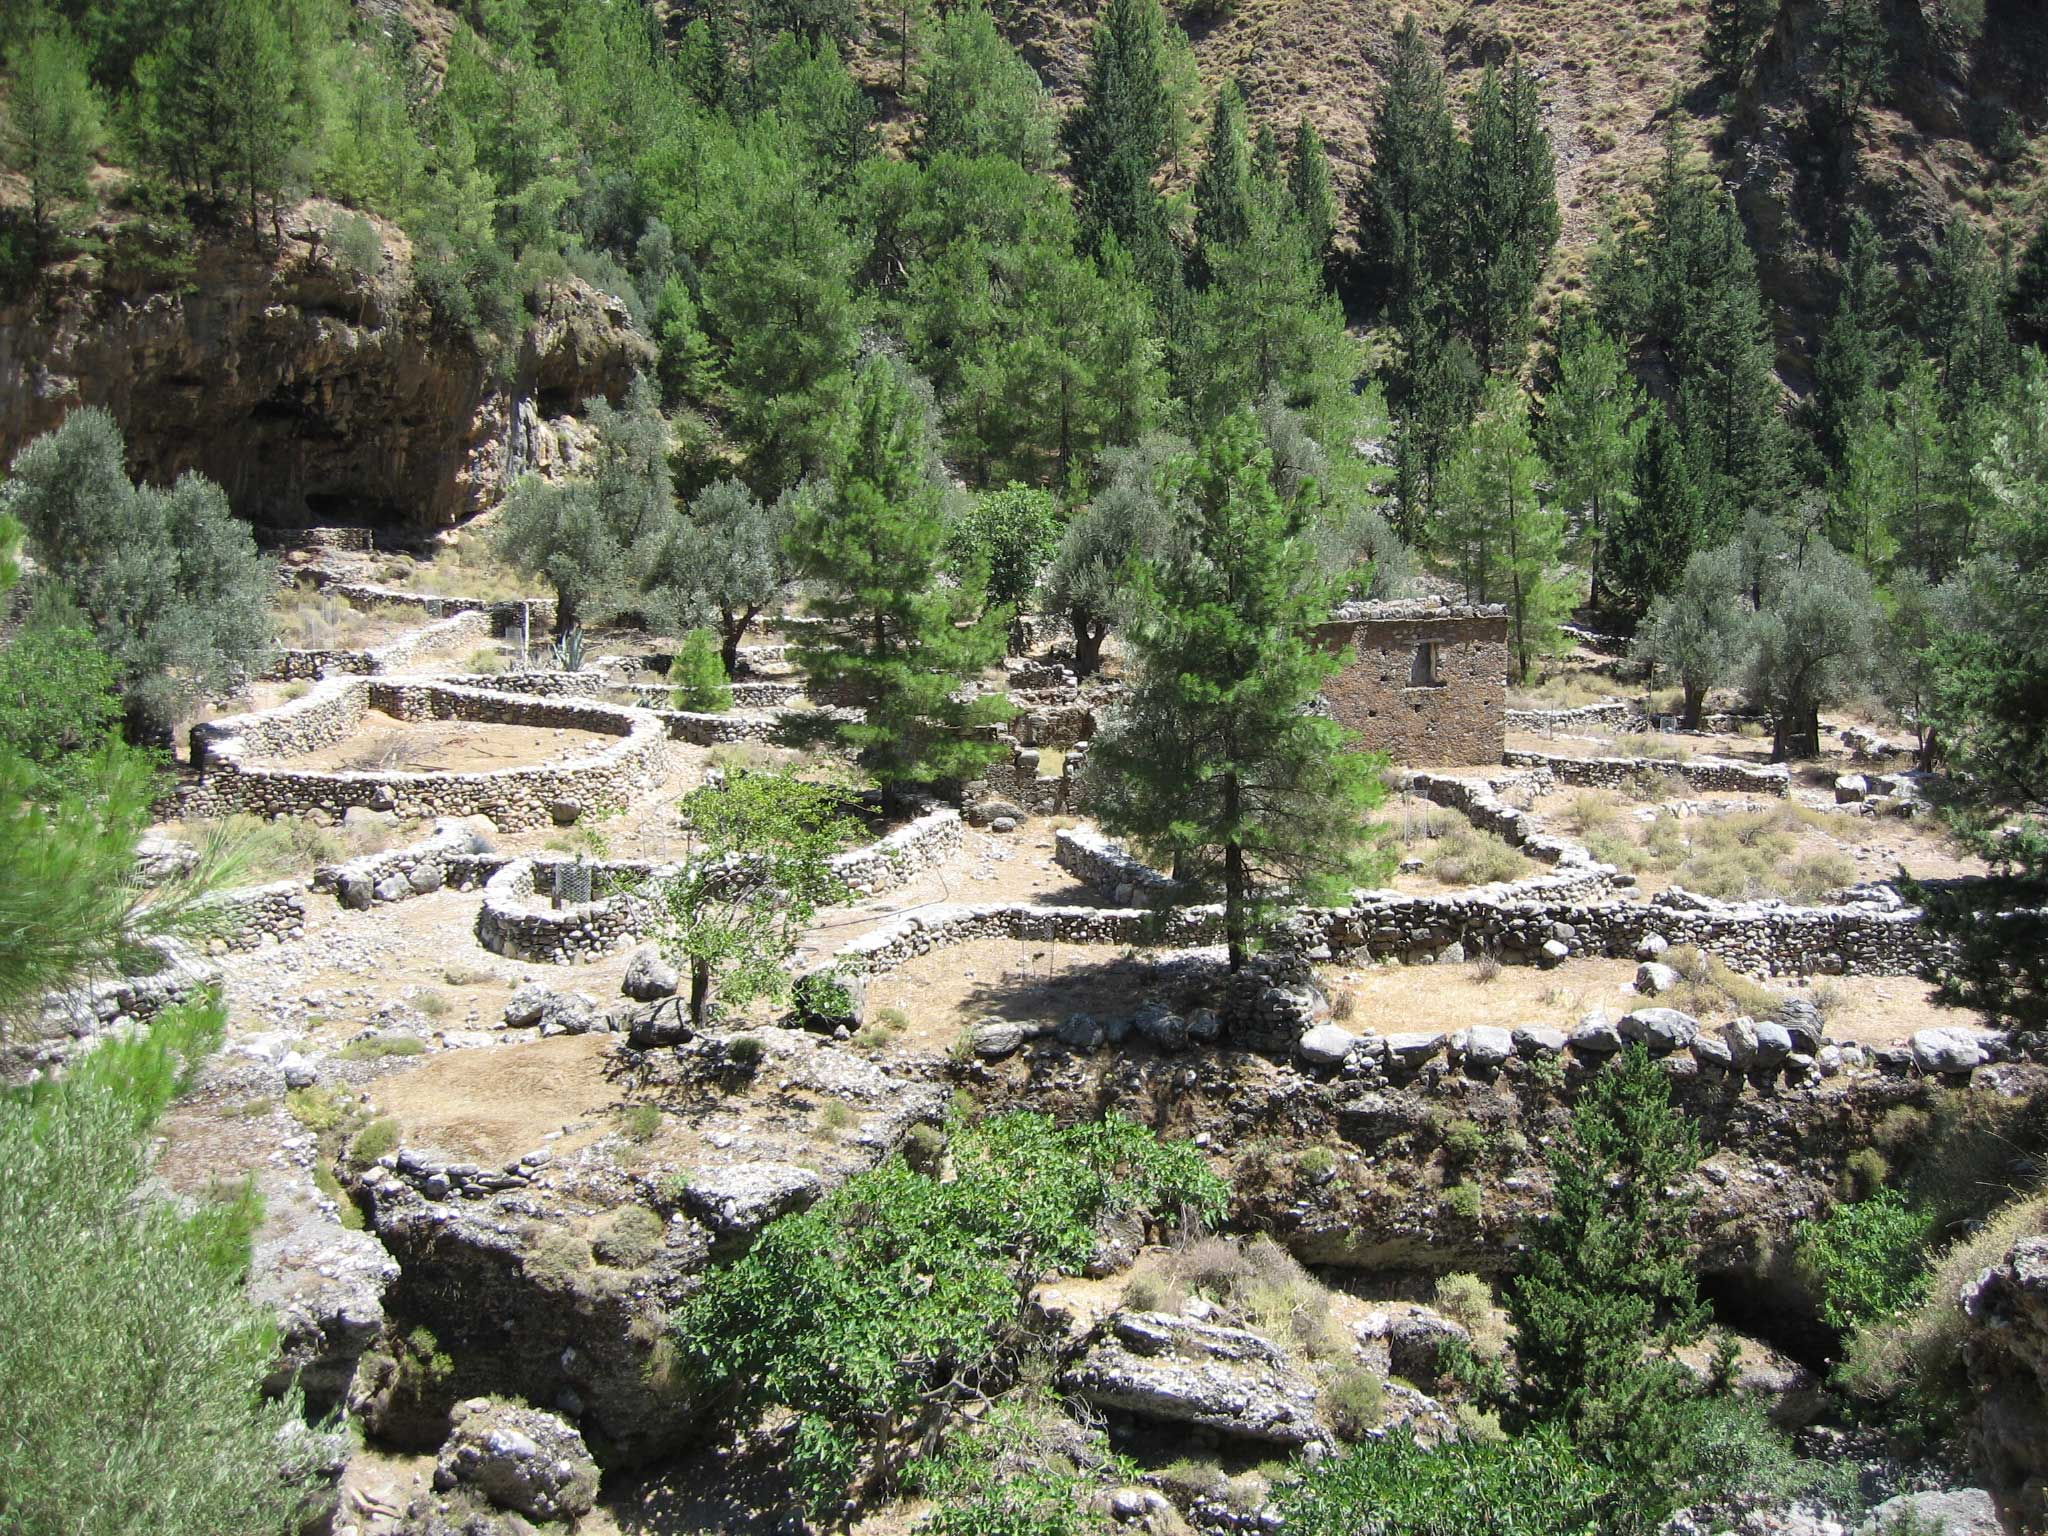 Building and wall ruins in the Samaria Gorge with pine trees growing amongst them, Crete